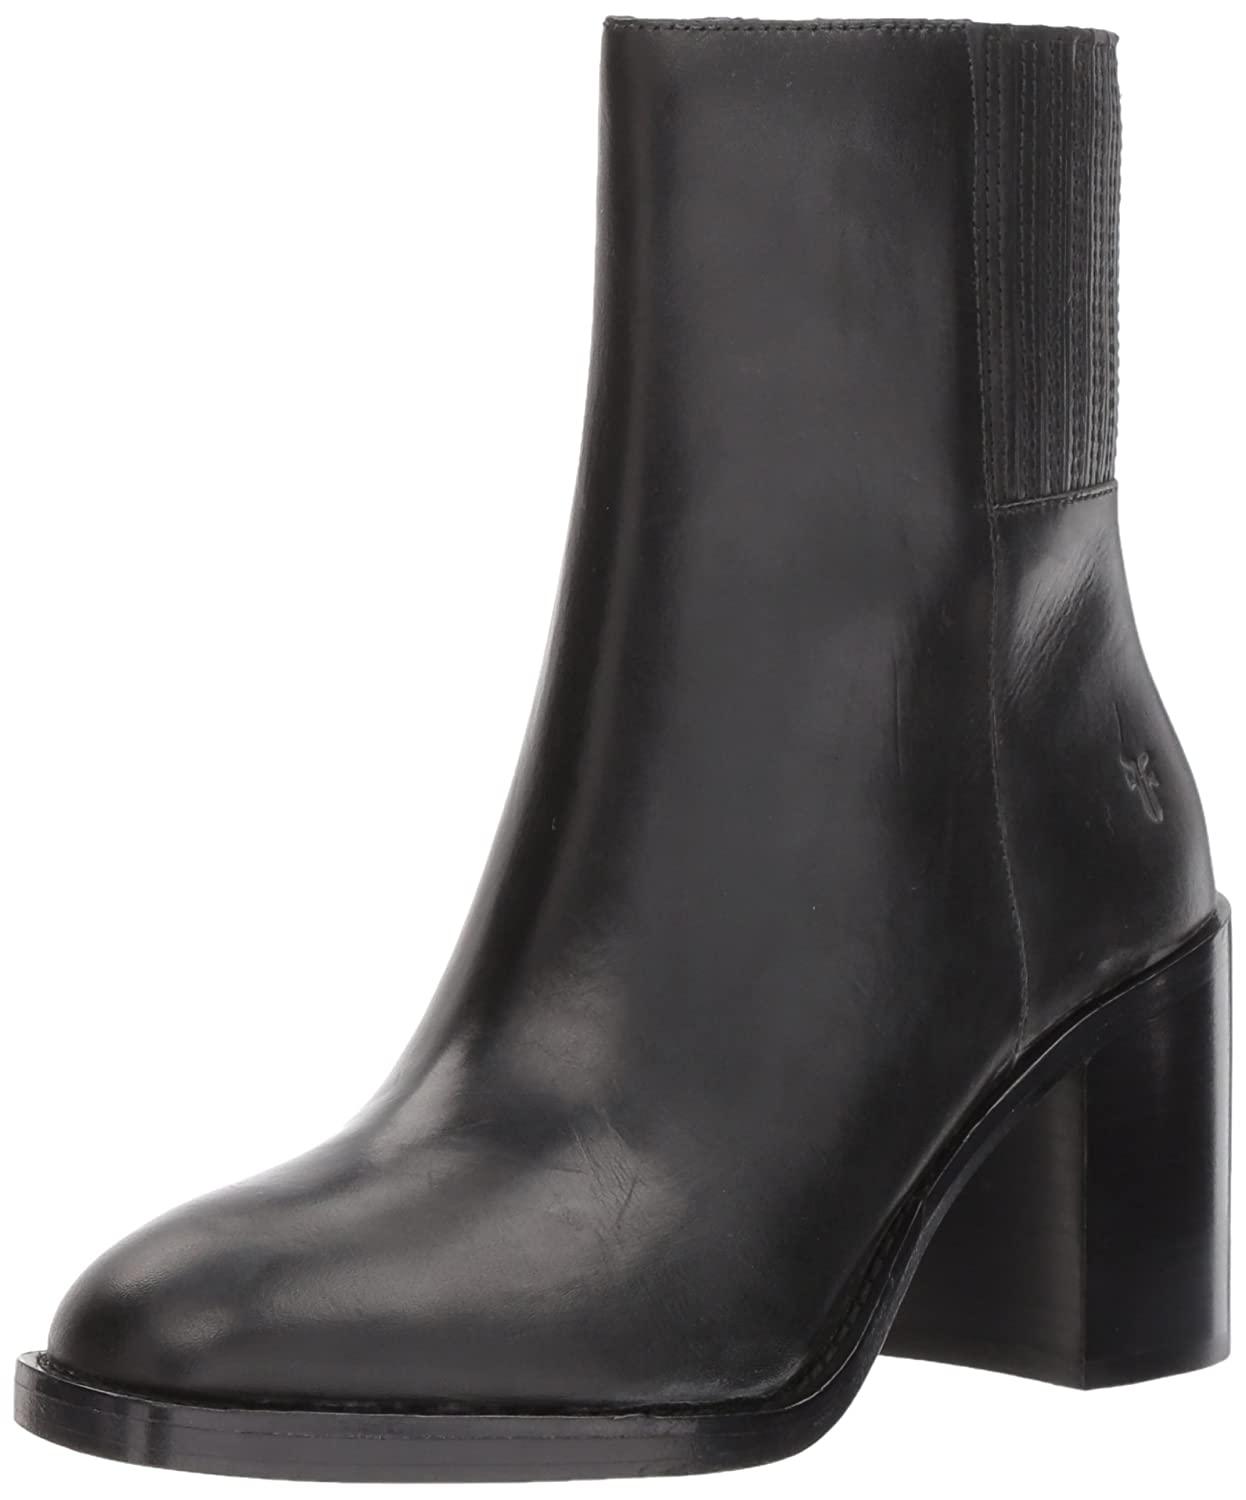 FRYE Women's Pia Short Chelsea Boot B06VSPXG2M 11 B(M) US|Black